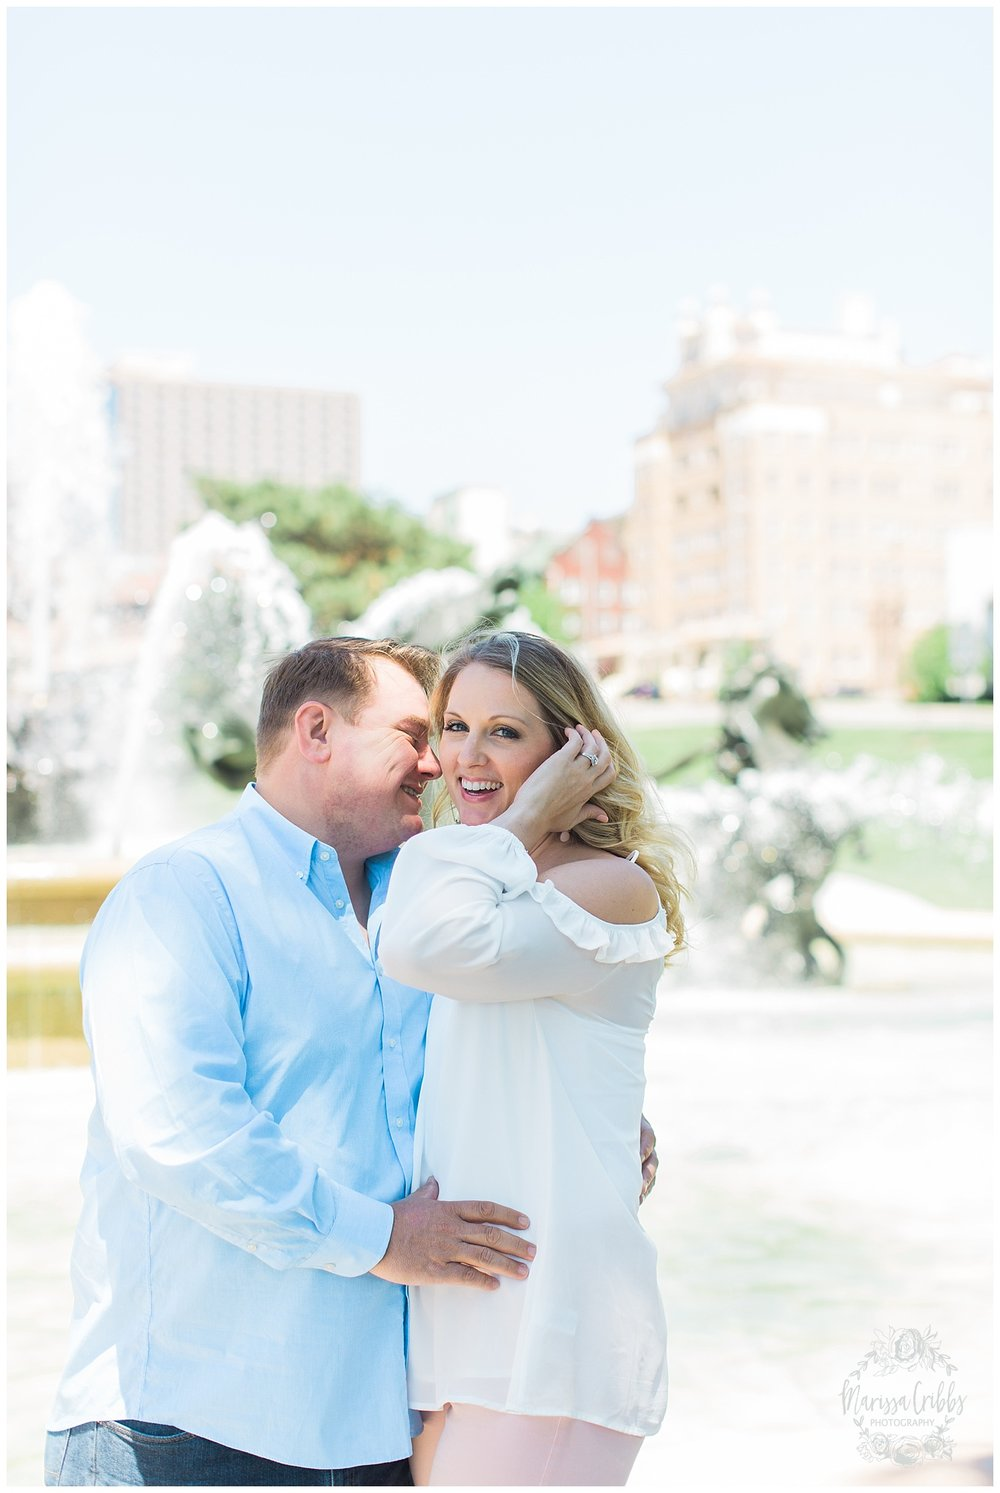 Kristen and Scott | Kansas City Plaza and Loose Park Engagement Photography | Marissa Cribbs Photography_1143.jpg